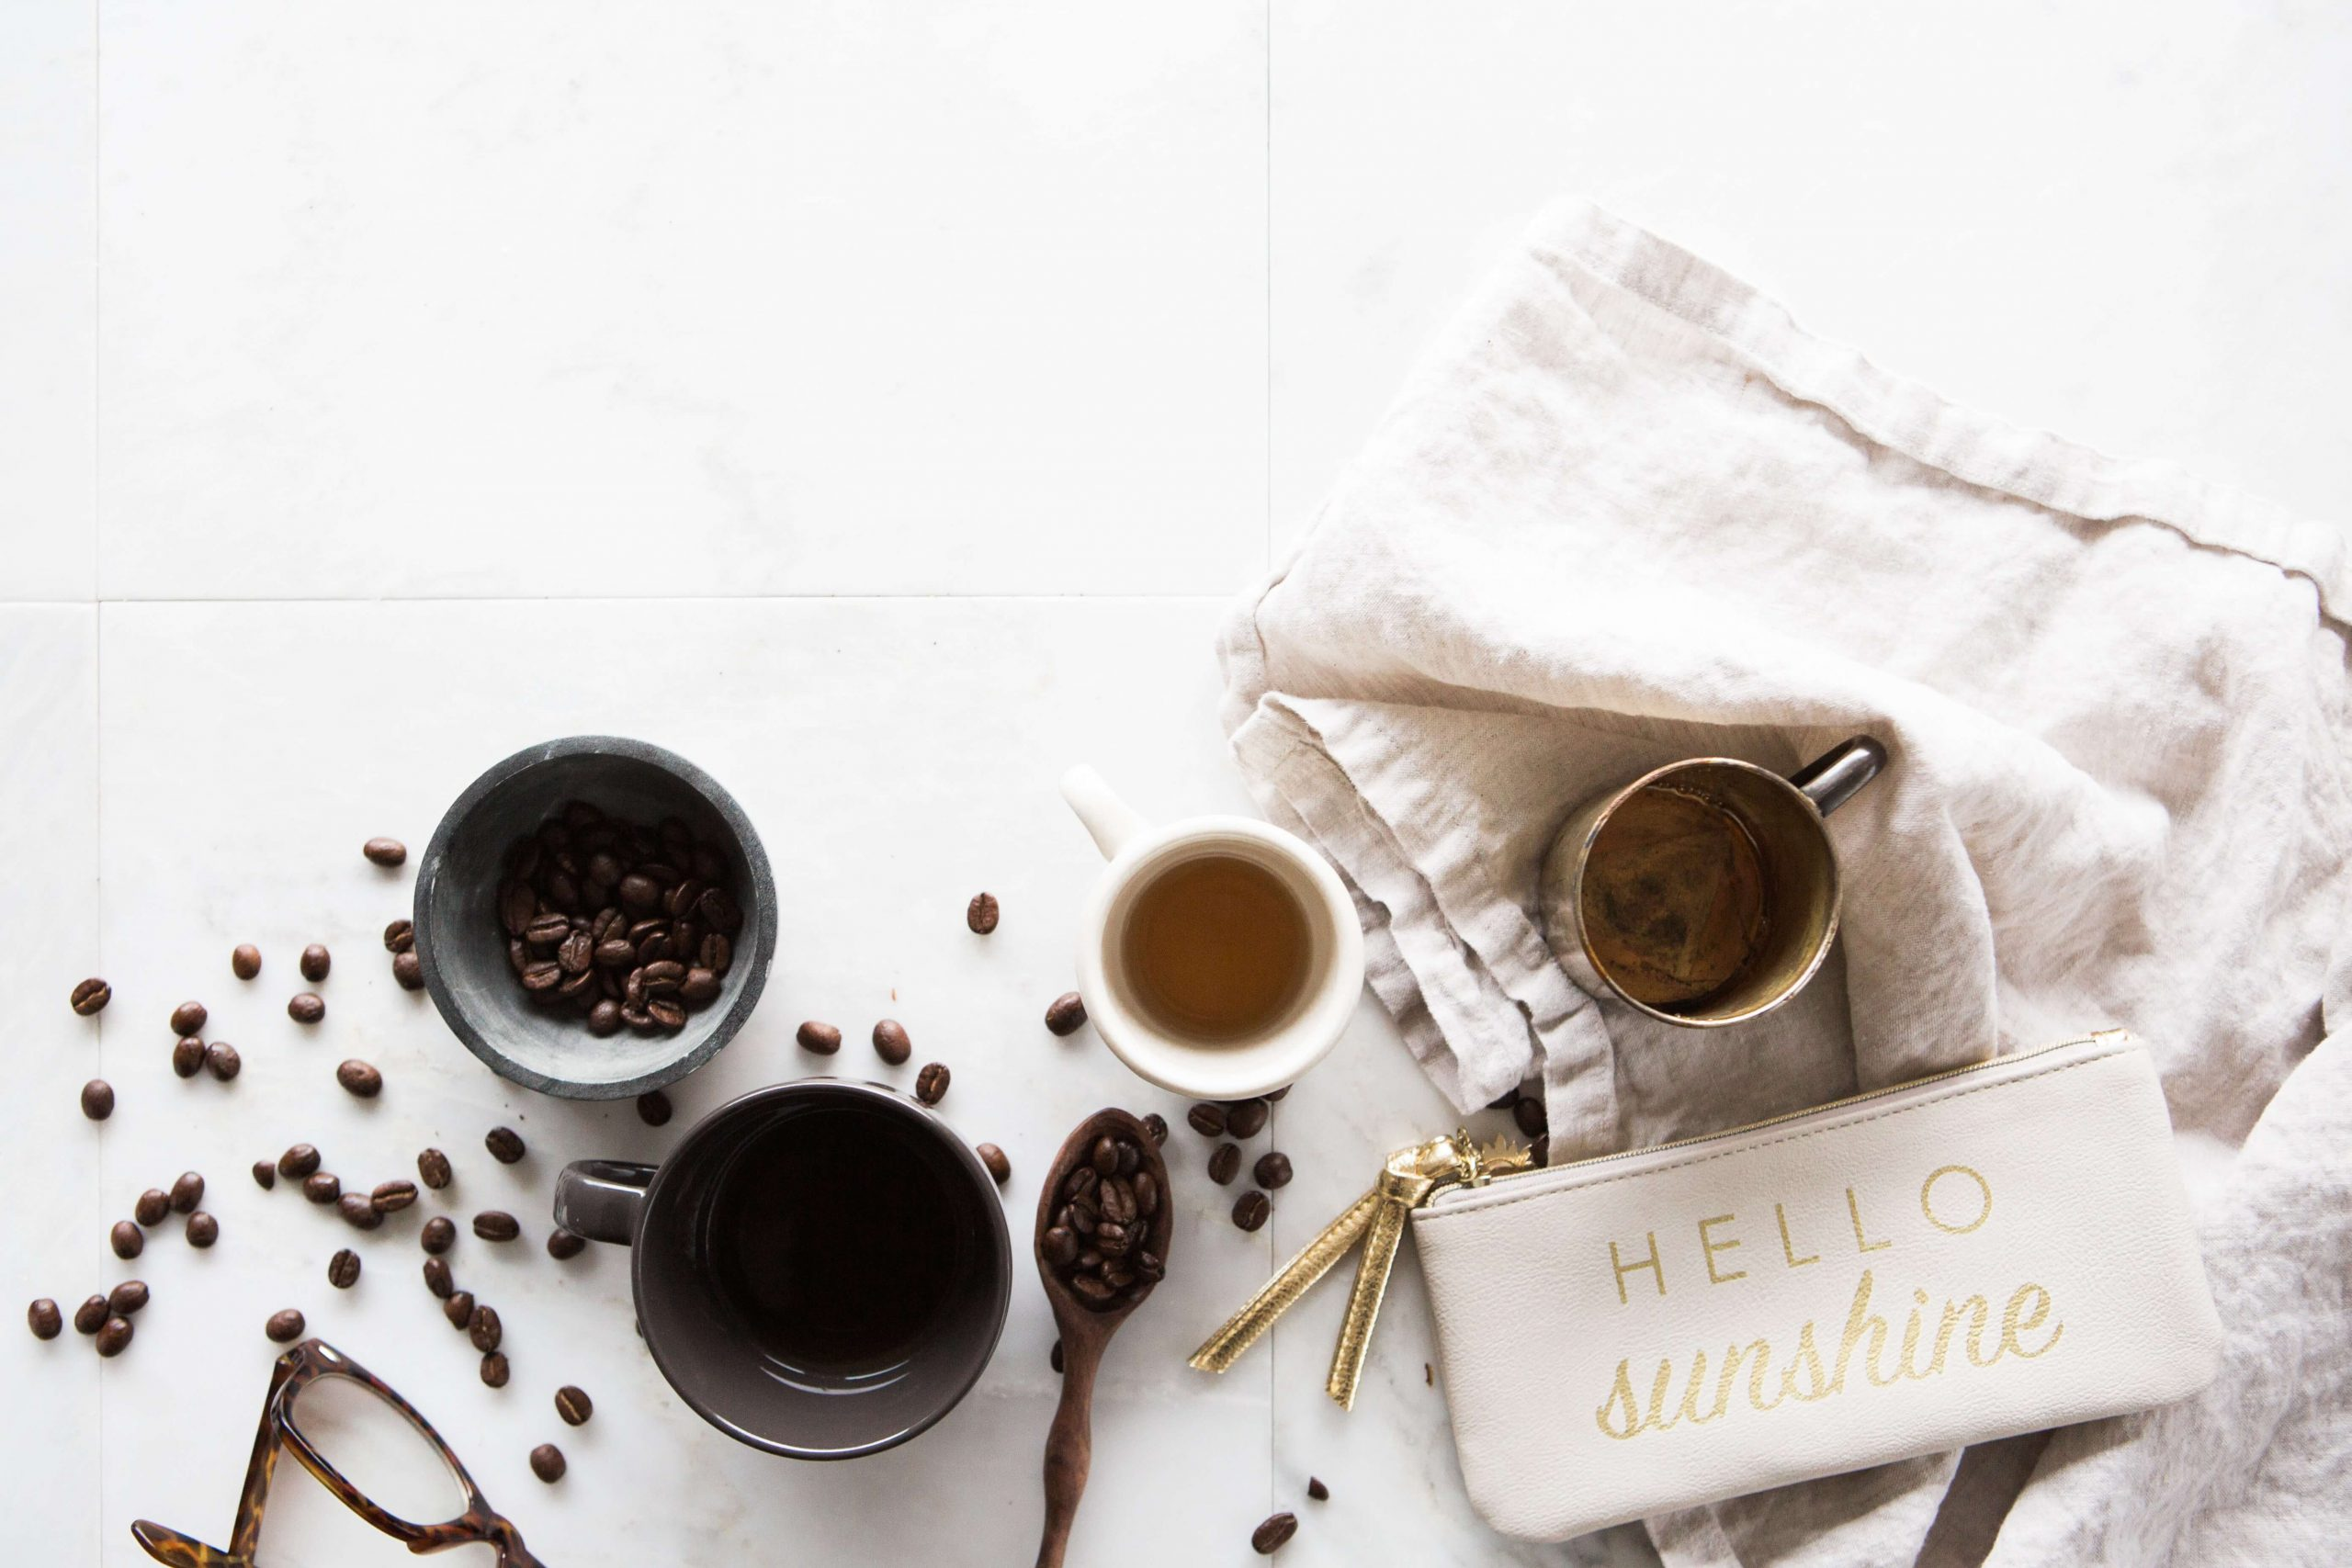 Besides coffee beans, you can consider developing other coffee products to aim at long-term growth, especially for an online platform.